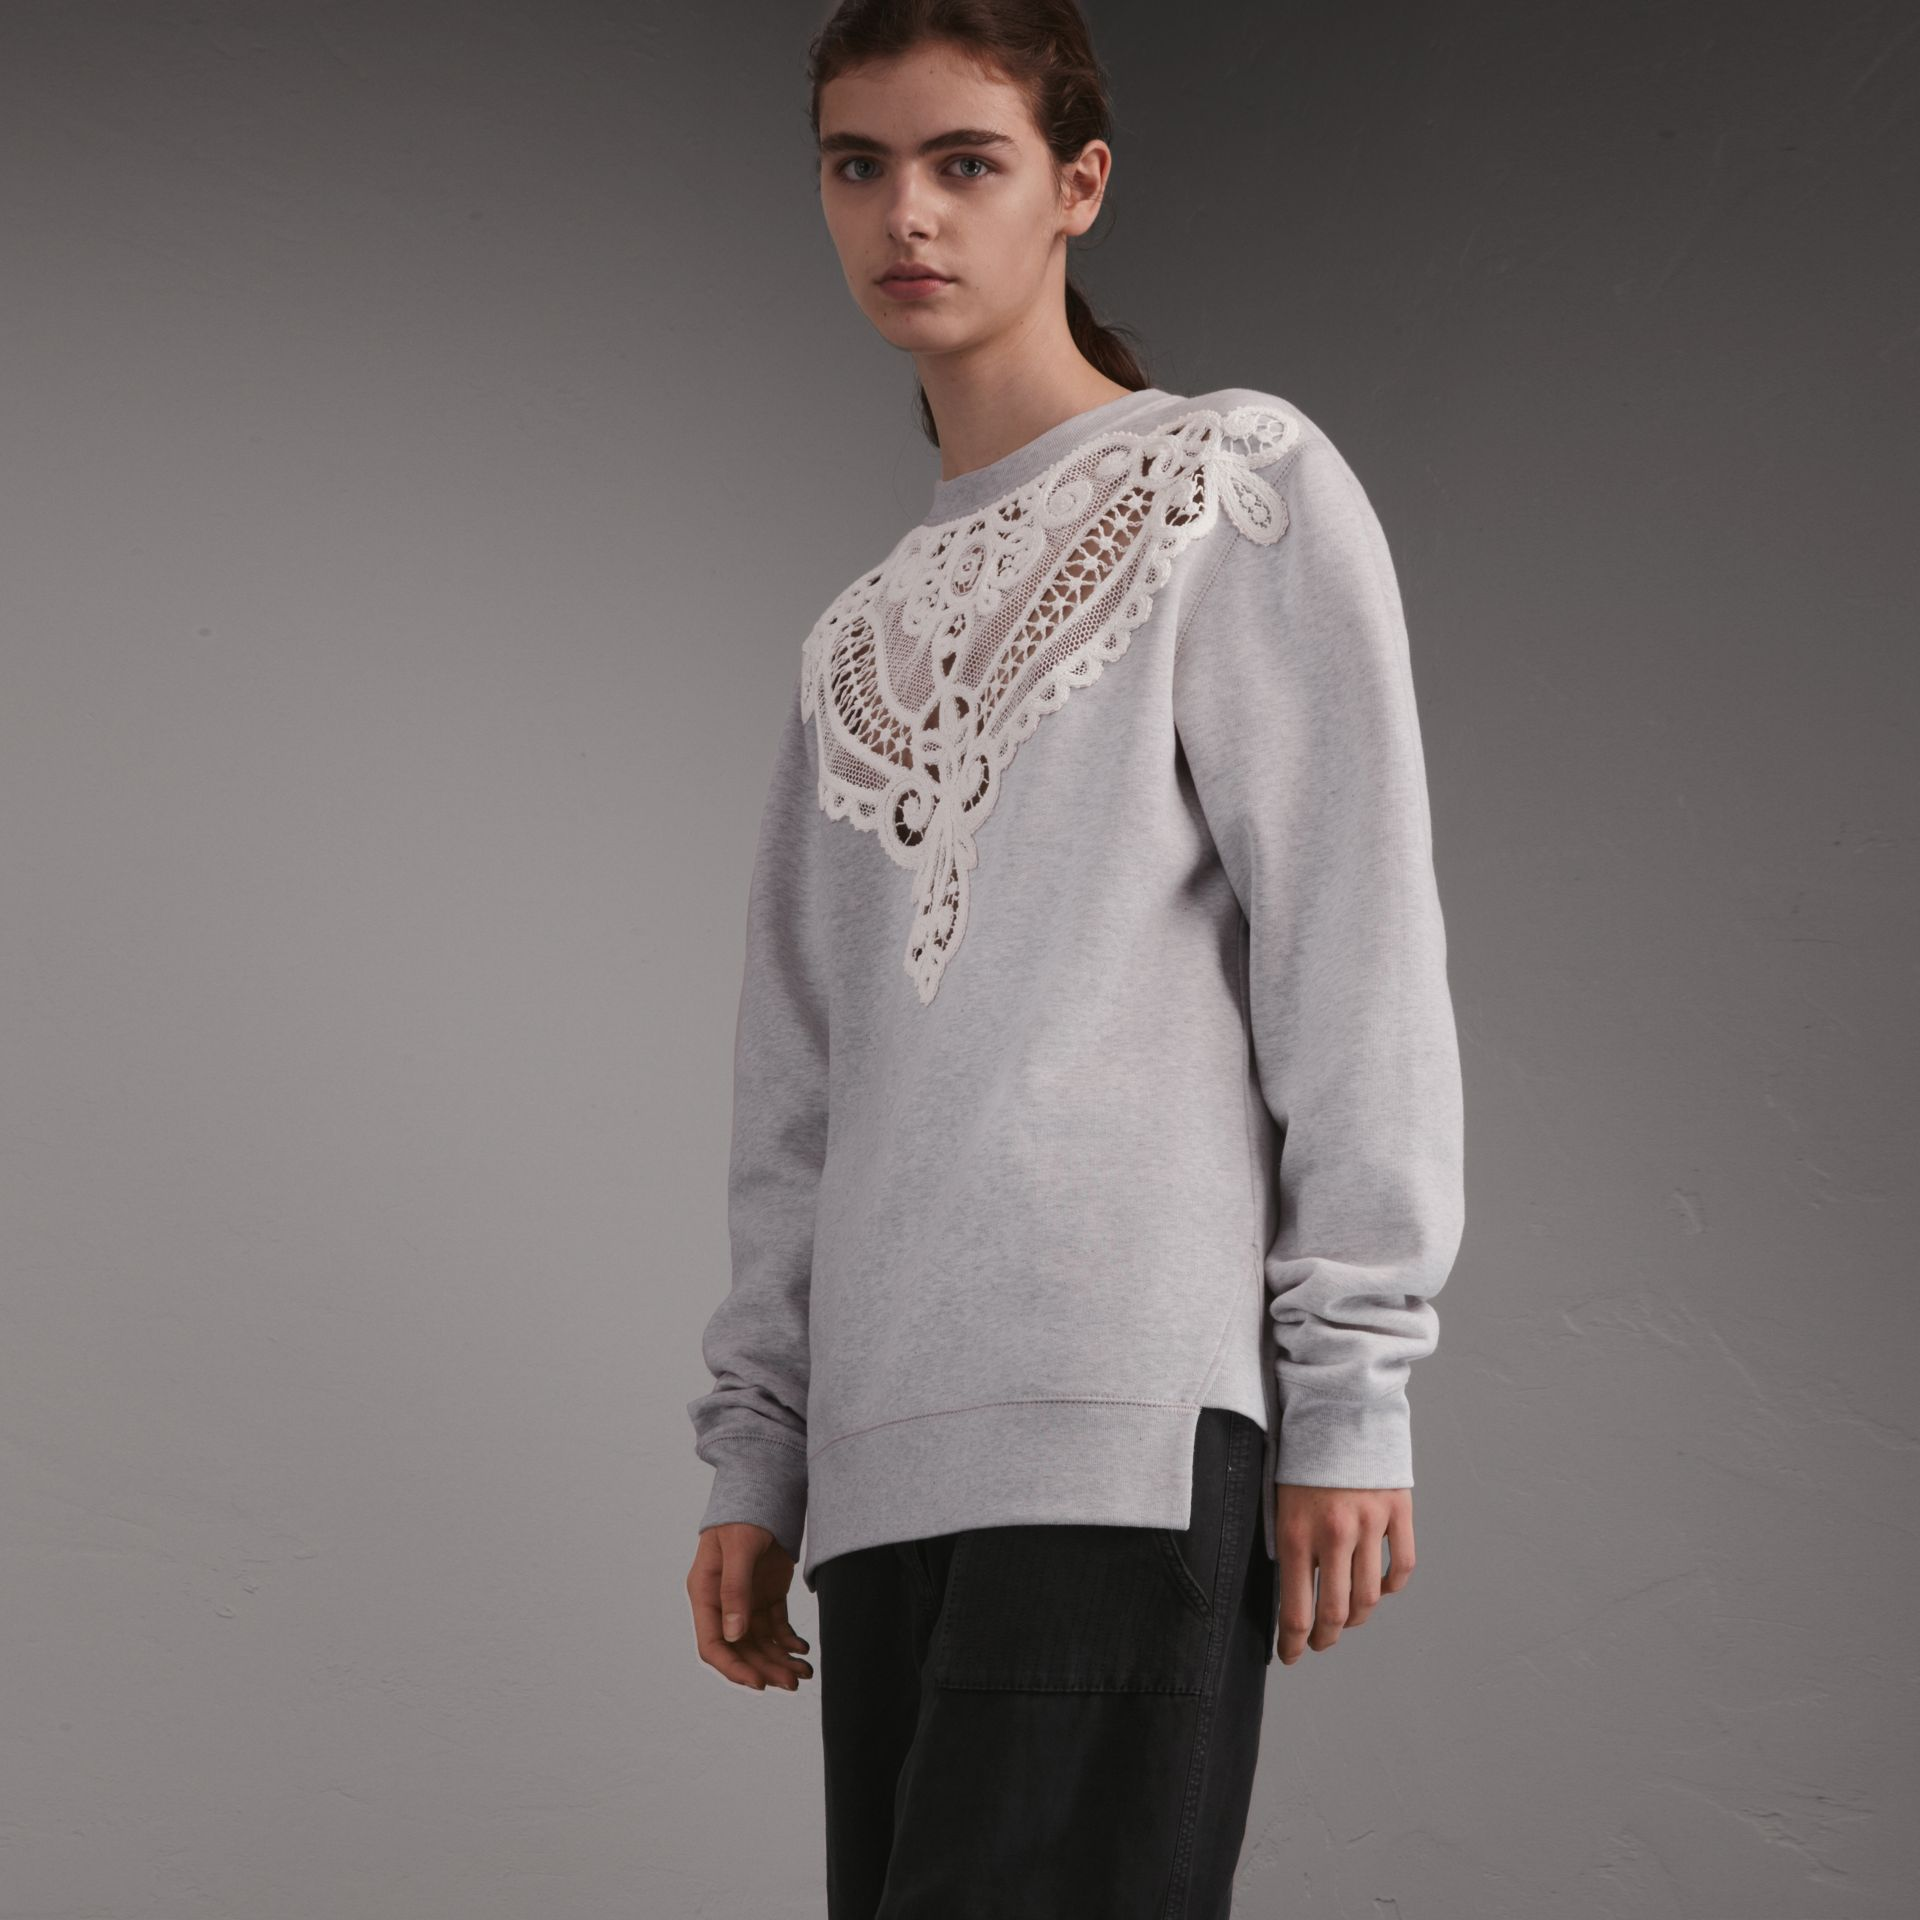 Unisex Lace Cutwork Sweatshirt in Light Grey Melange - Women | Burberry Singapore - gallery image 1